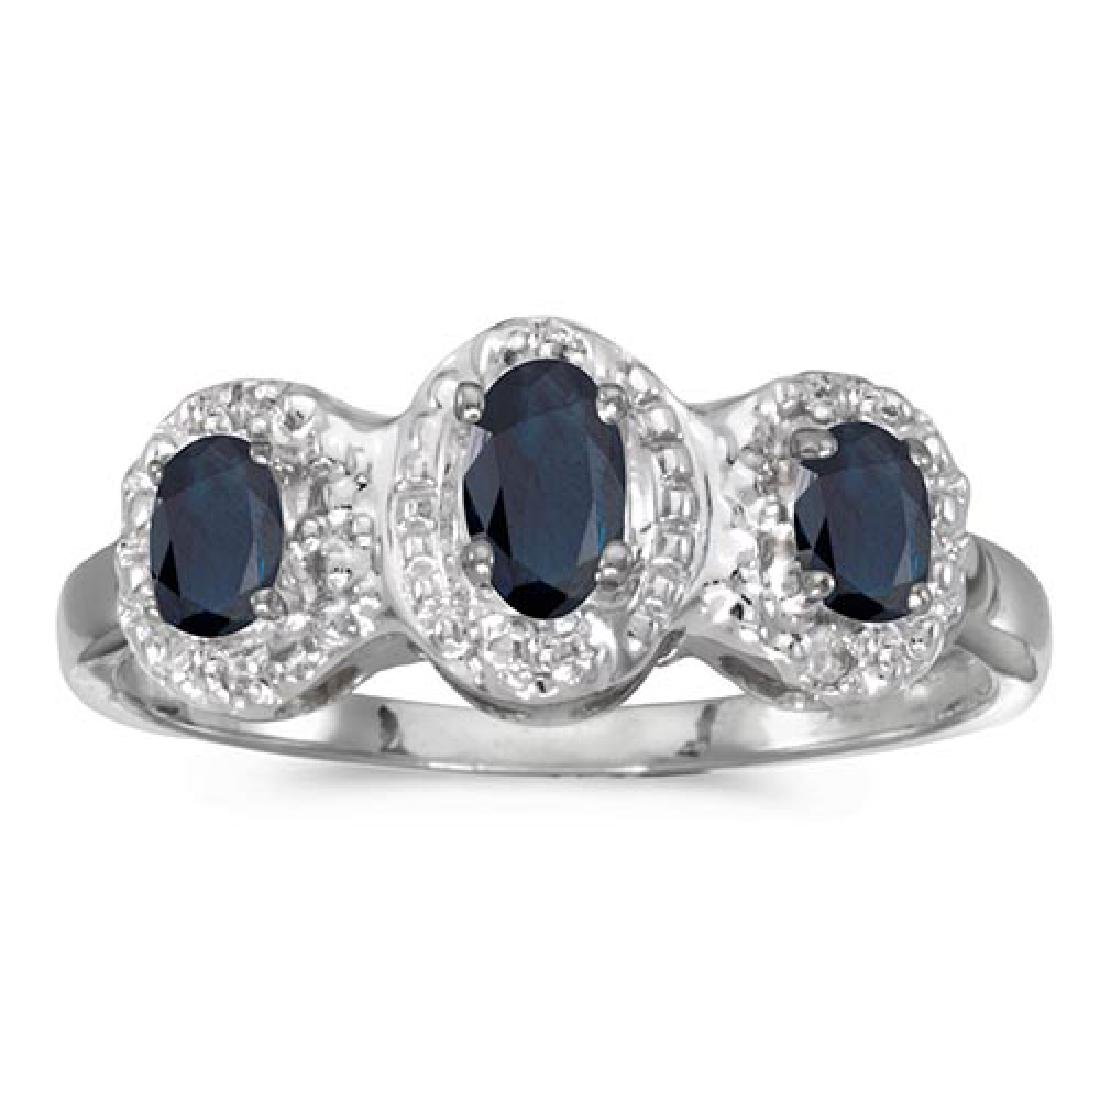 Certified 14k White Gold Oval Sapphire And Diamond Thre